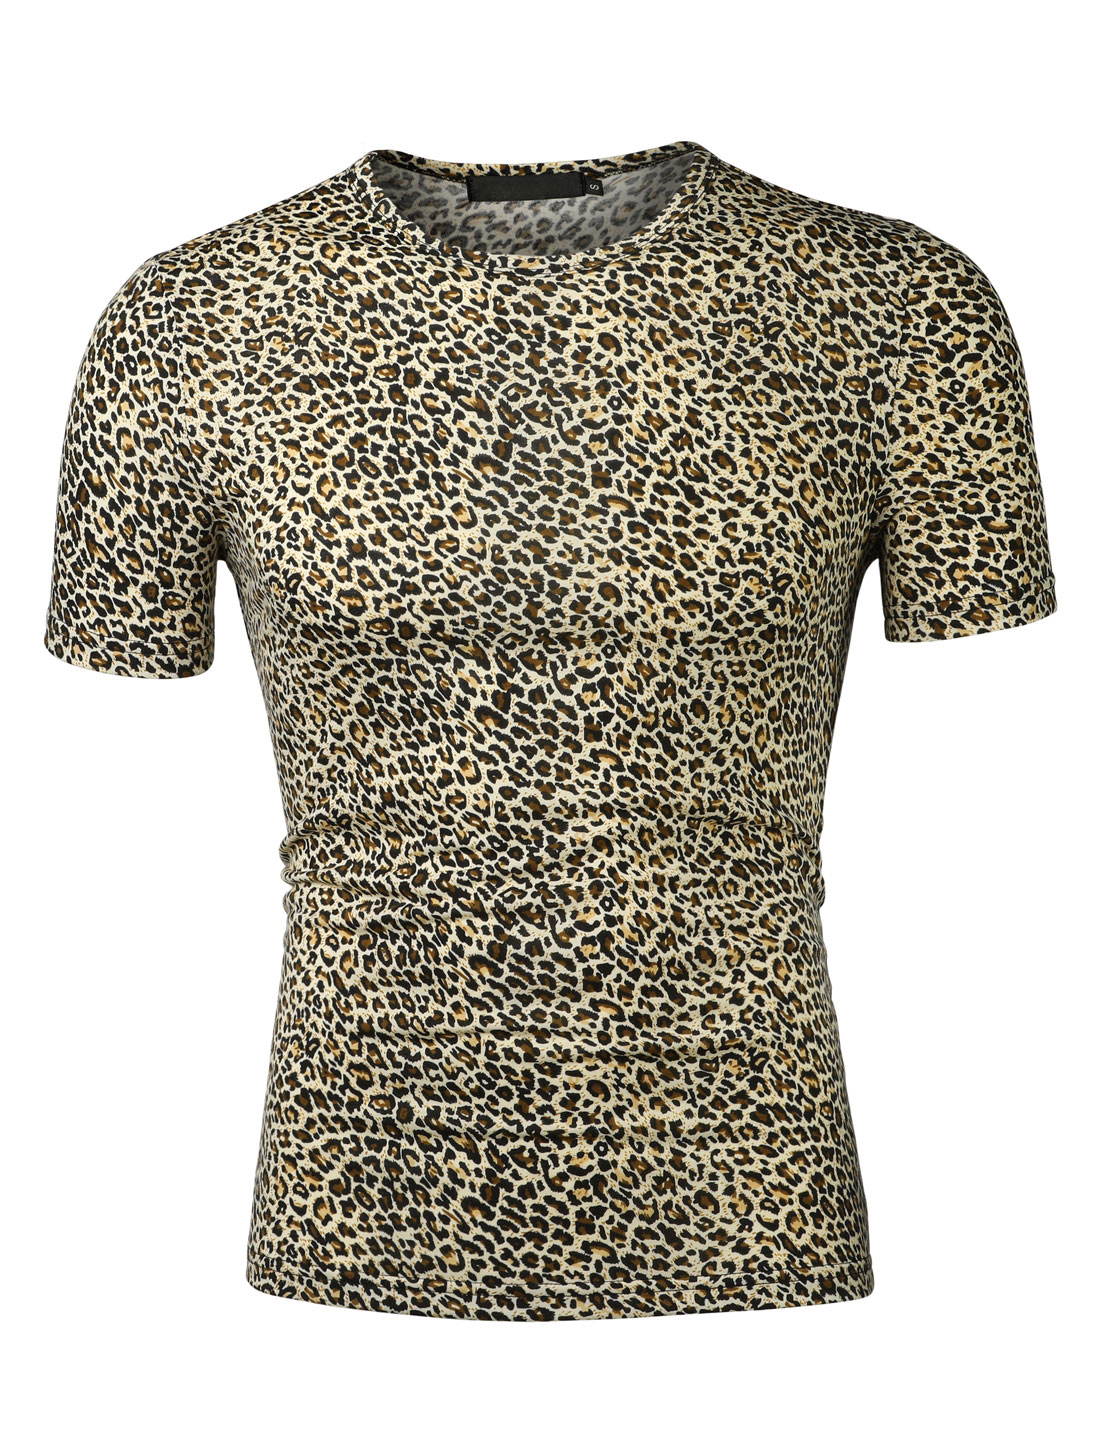 Mens Beige Black Stylish Leopard Prints Slim Summer T-shirt XL